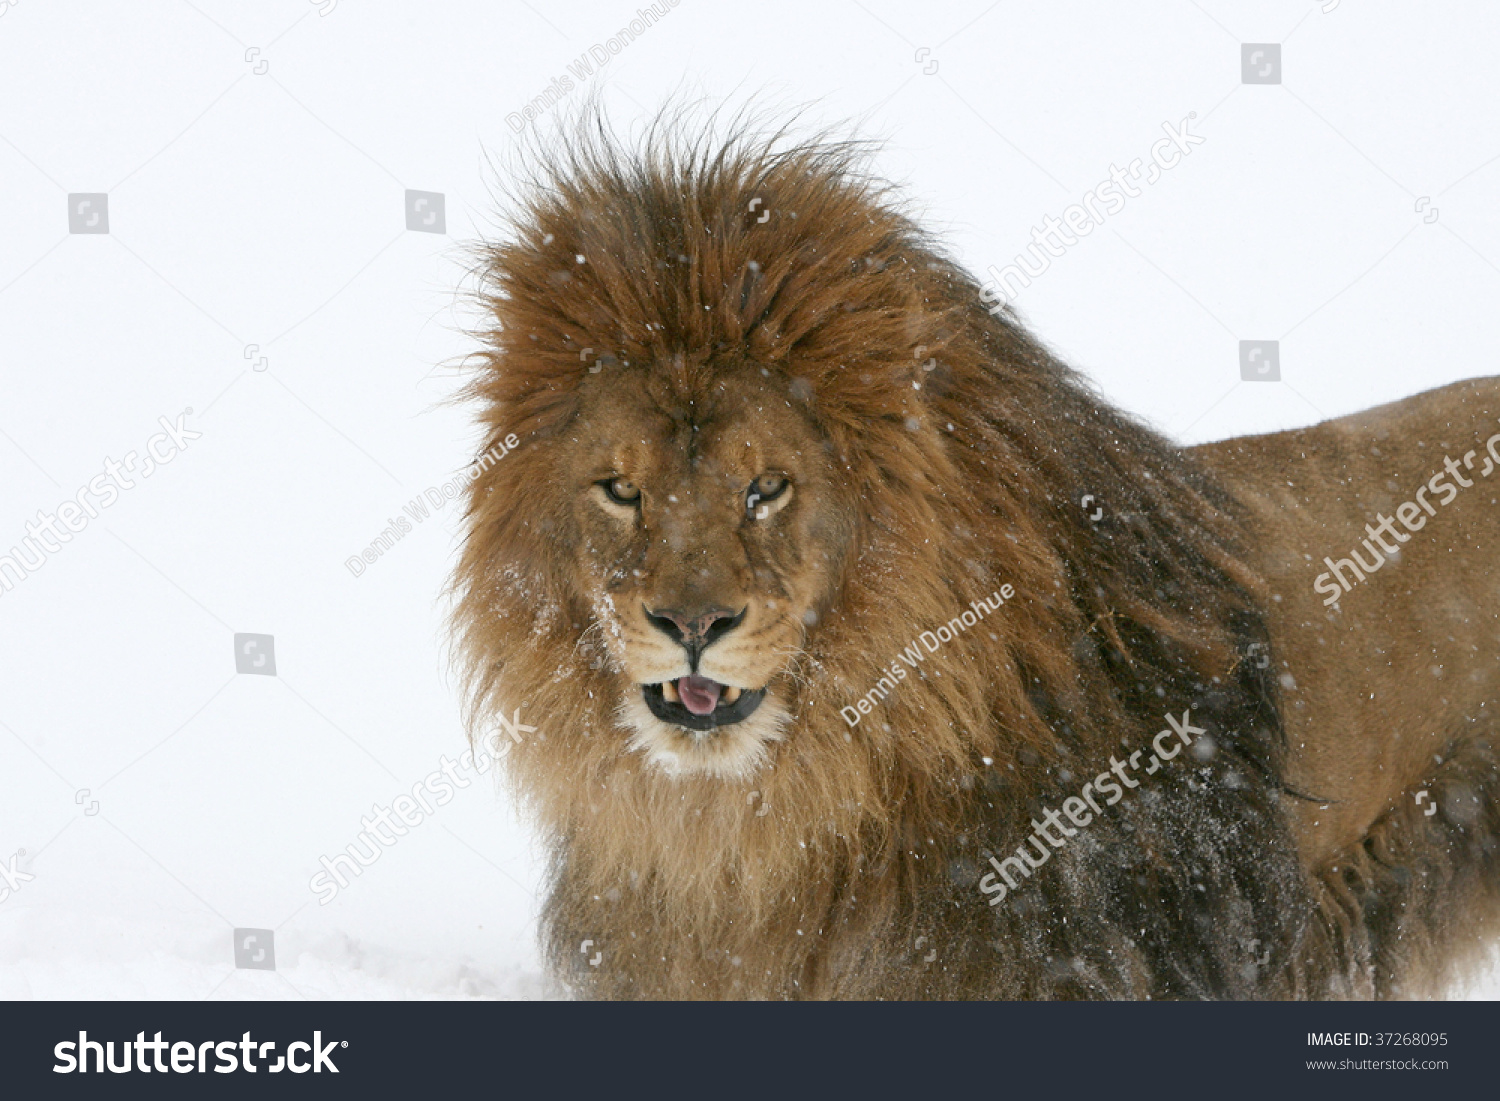 Barbary lion project